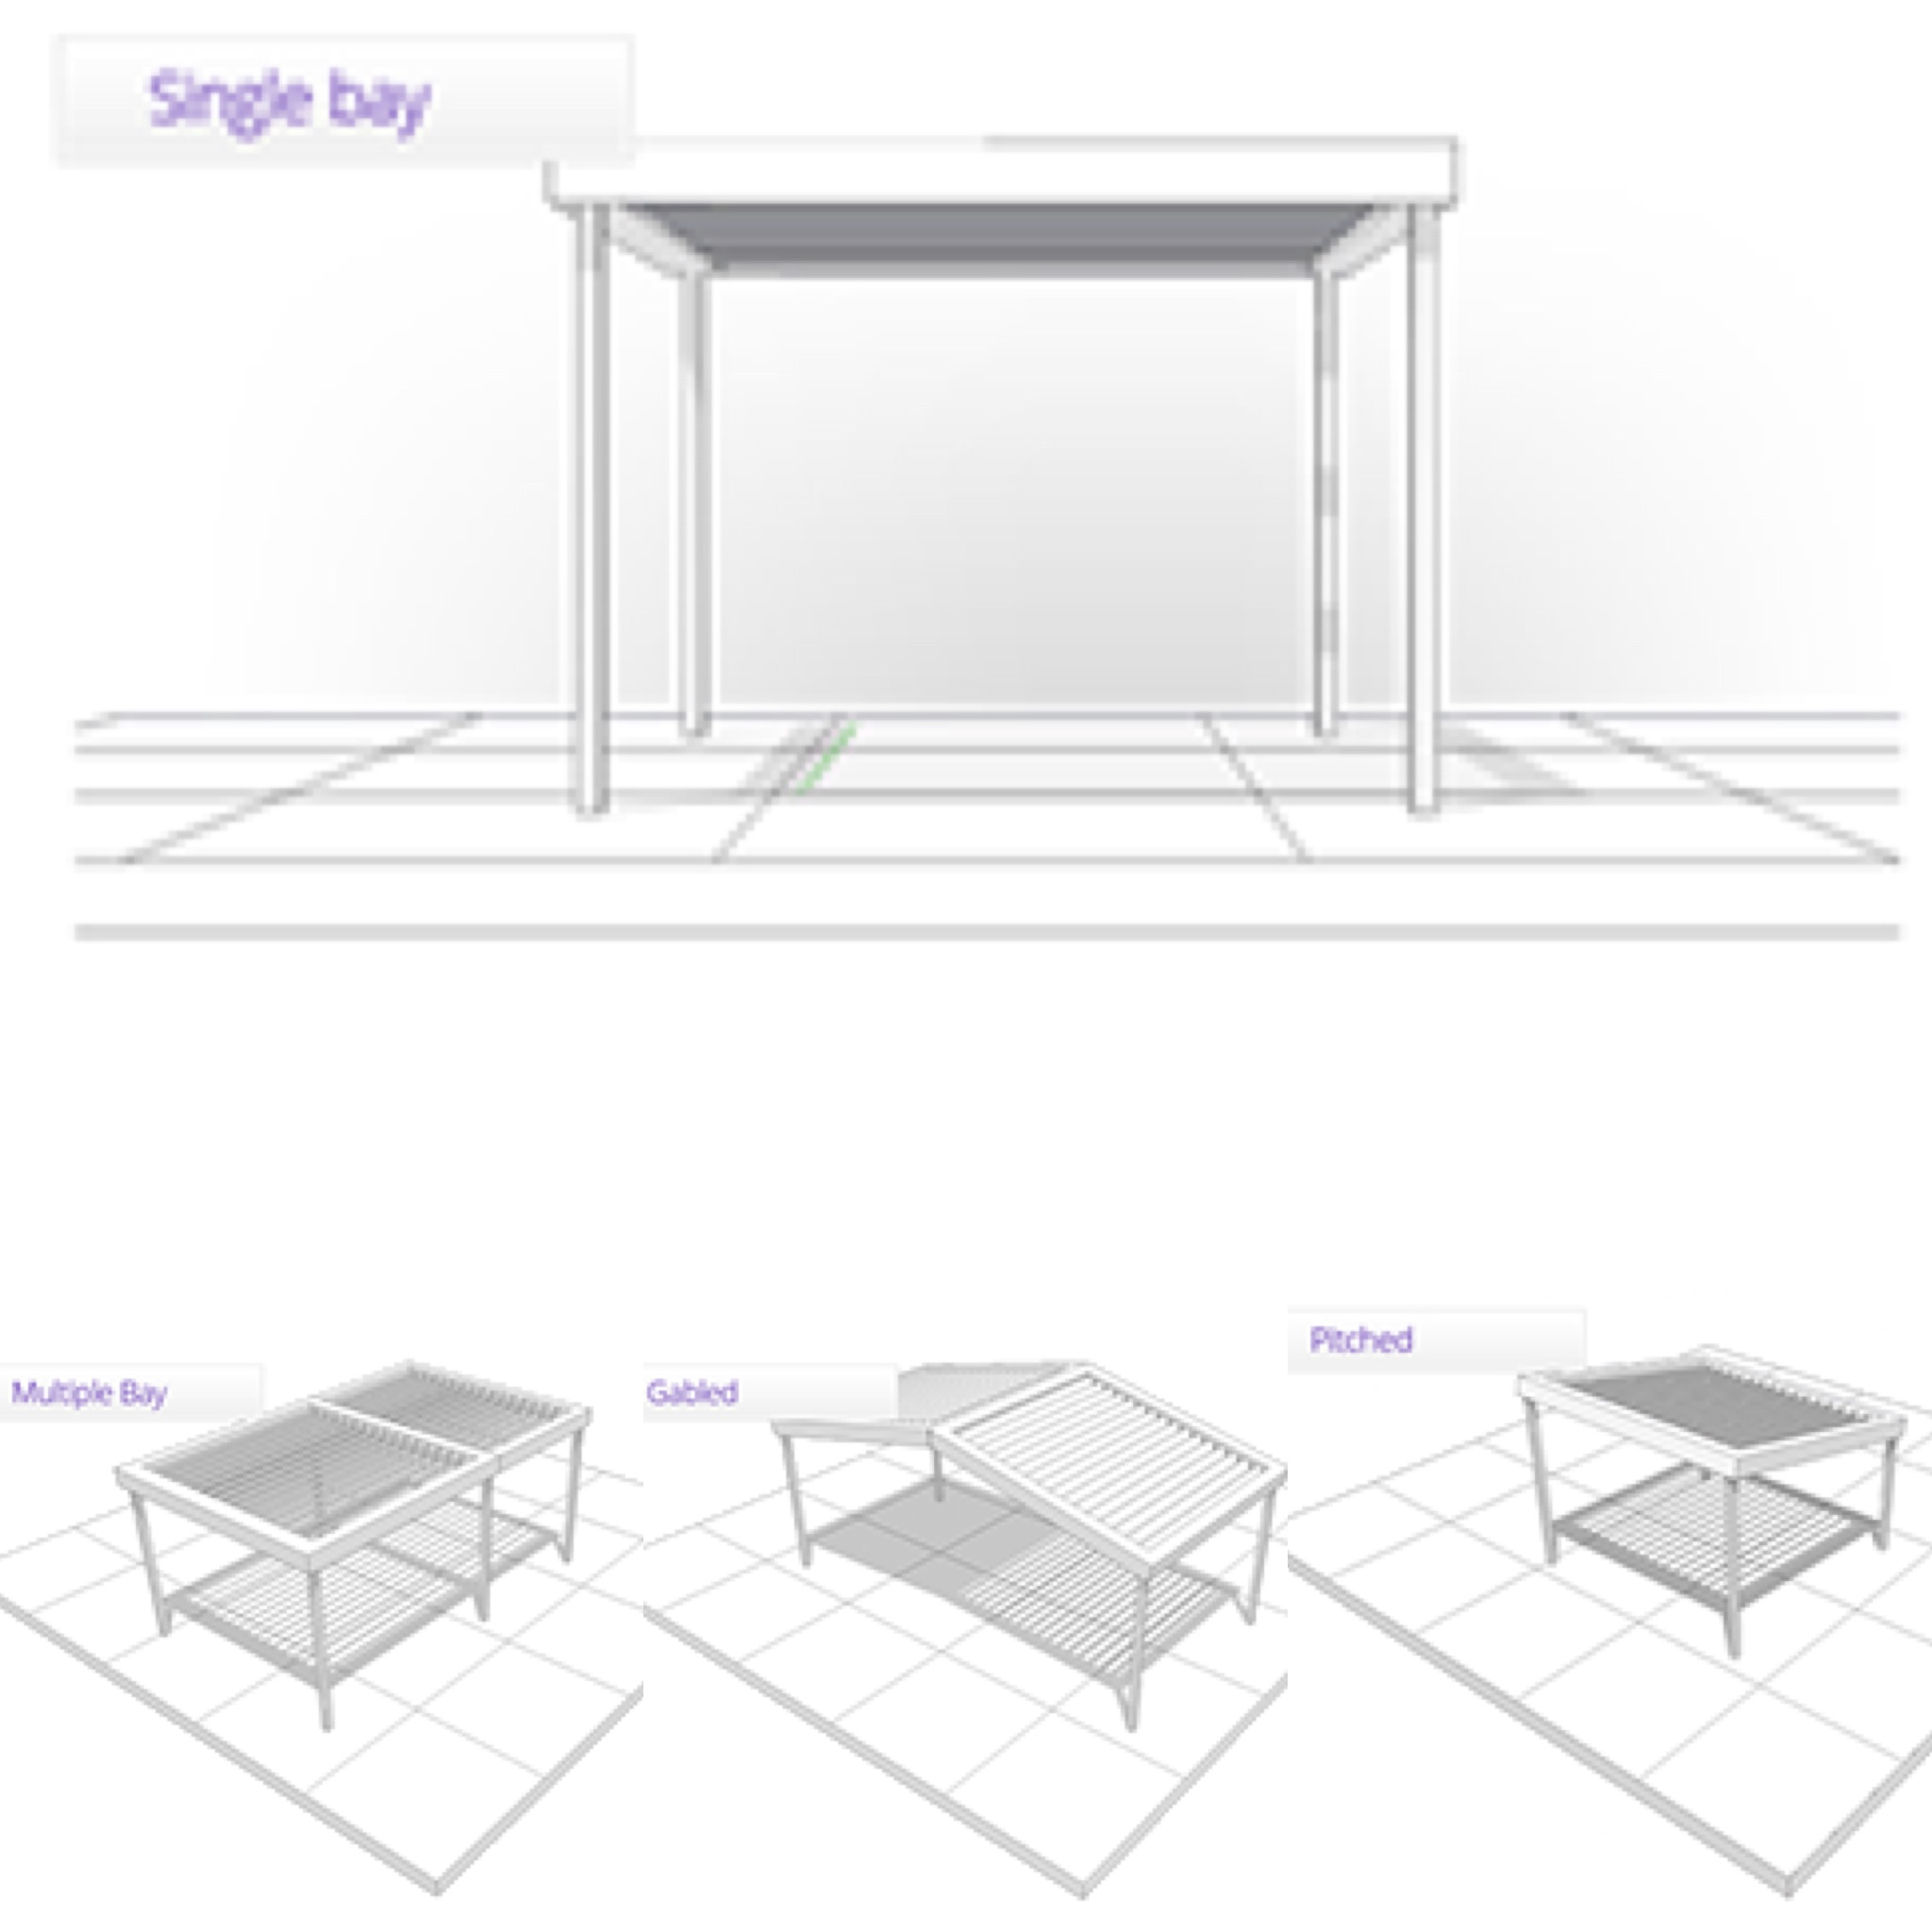 Design - Vergola® can be built to suit any style whether flat, pitched, gabled or inserted into an existing frameFrom single bays to multiple bays, a Vergola® can be designed into the smallest opening to covering large areas.